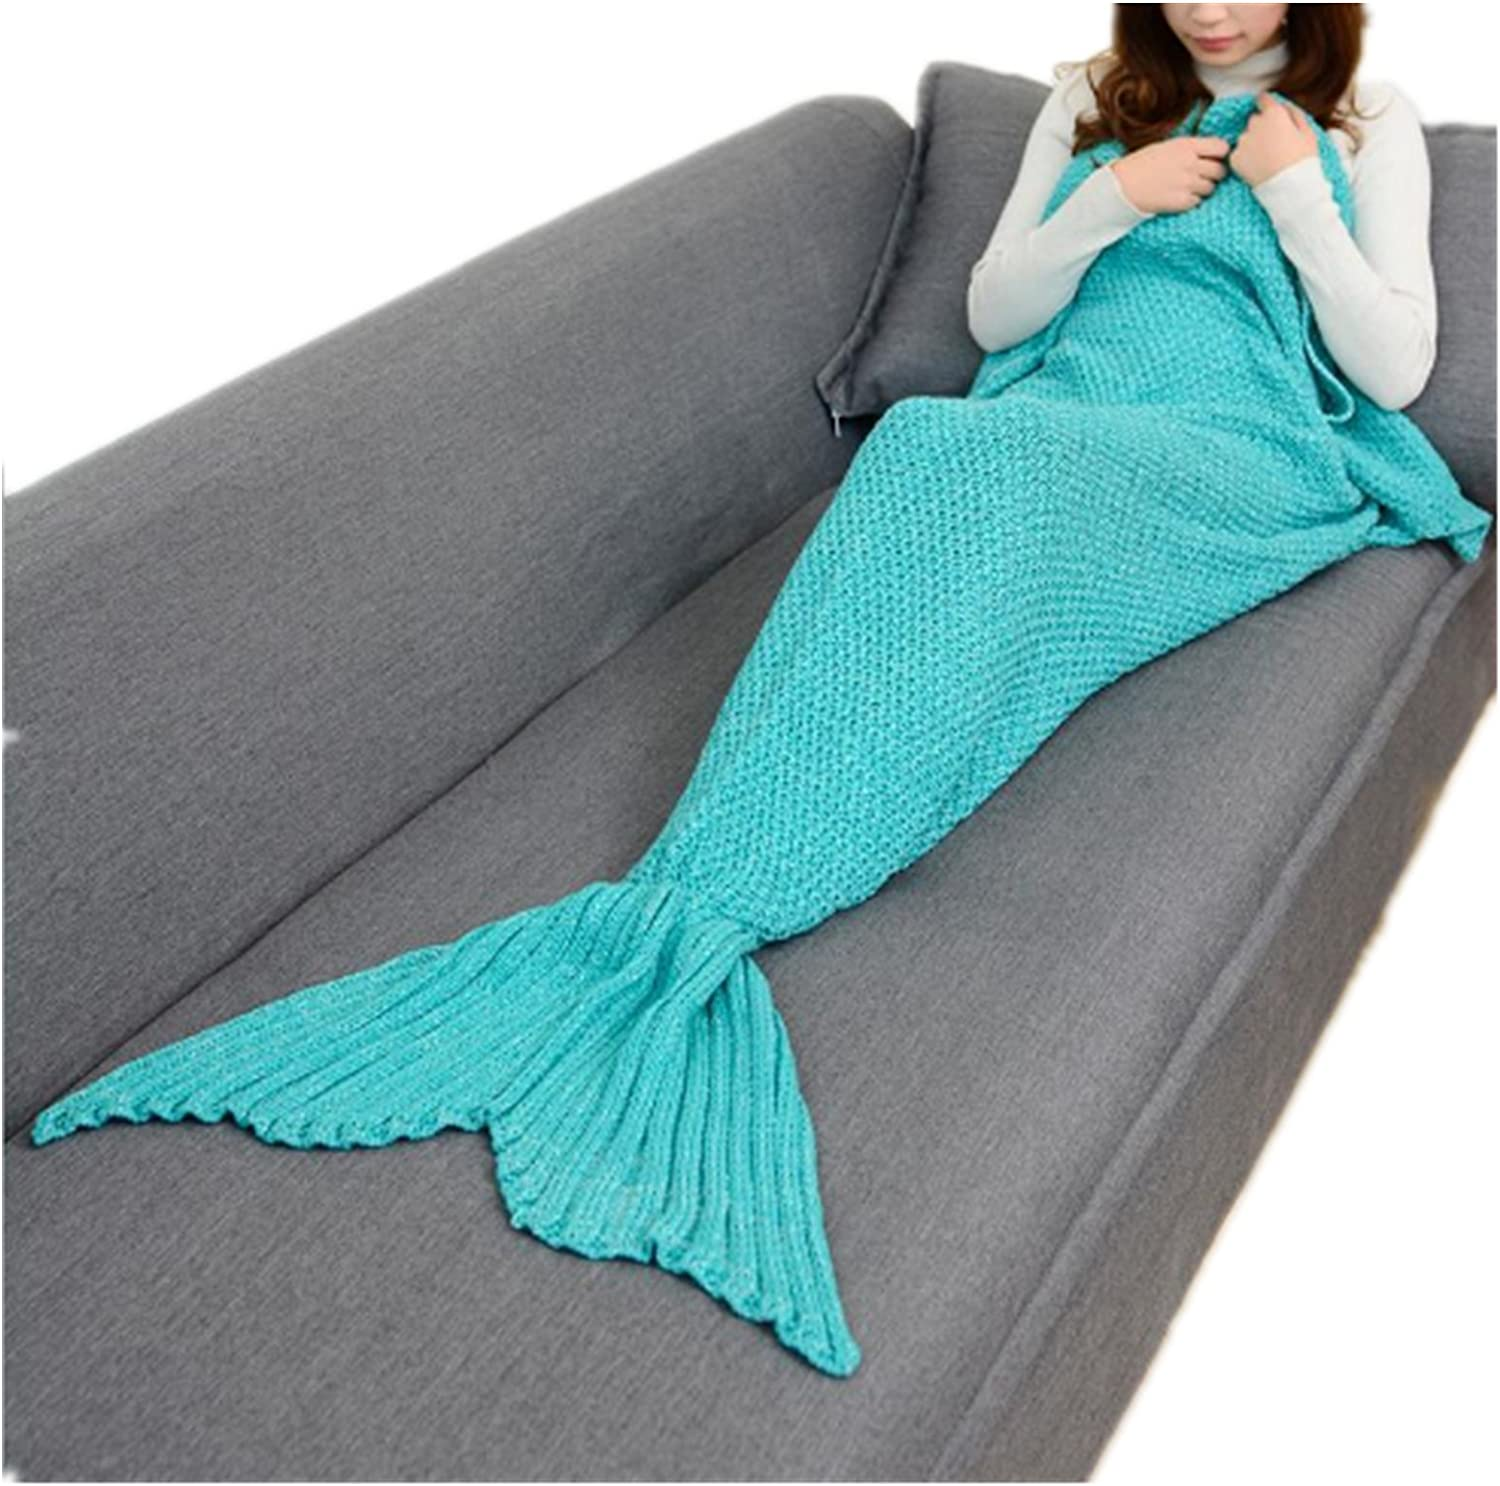 Primerry Present Mermaid Fish Tail Wool Knitted Sofa Blanket Crochet Quilt (Mint Green, 180X90 cmAdult)